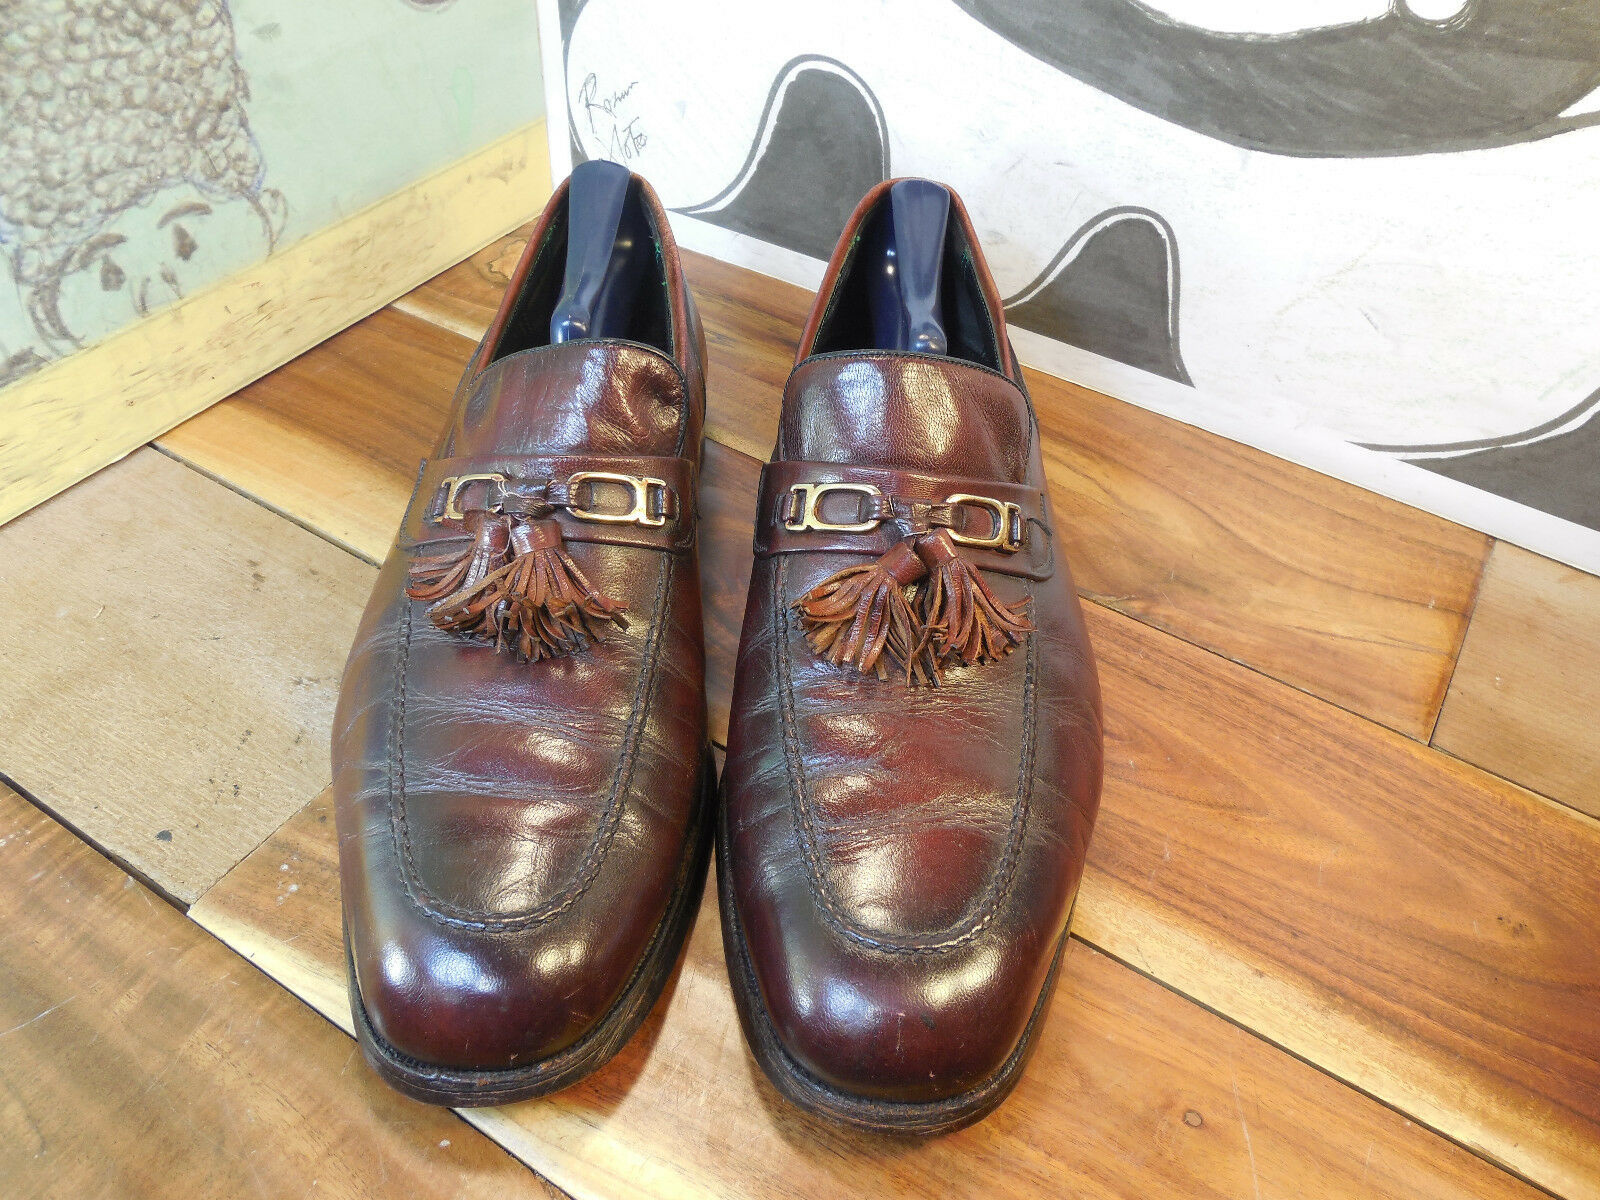 Vintage Florsheim Imperial Burgundy Leather 10.5D Tassel Loafers Men's 10.5D Leather d9057b